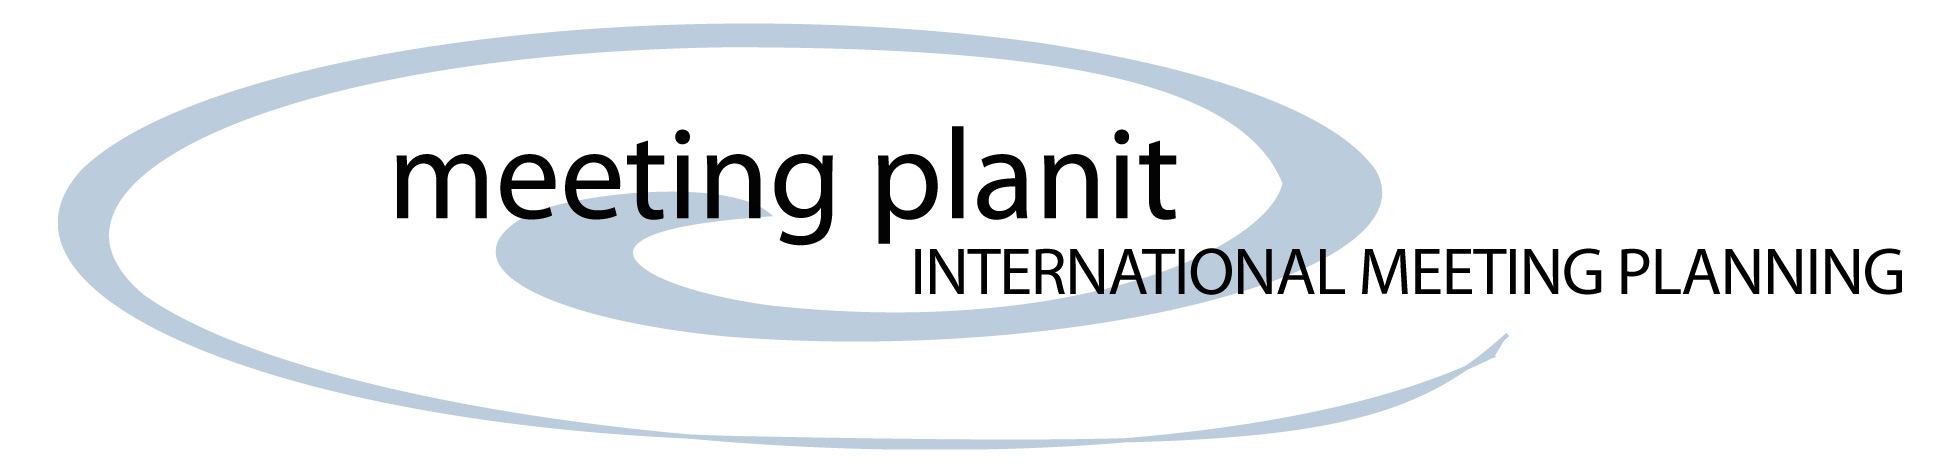 Meeting Planit: International Meeting Planning